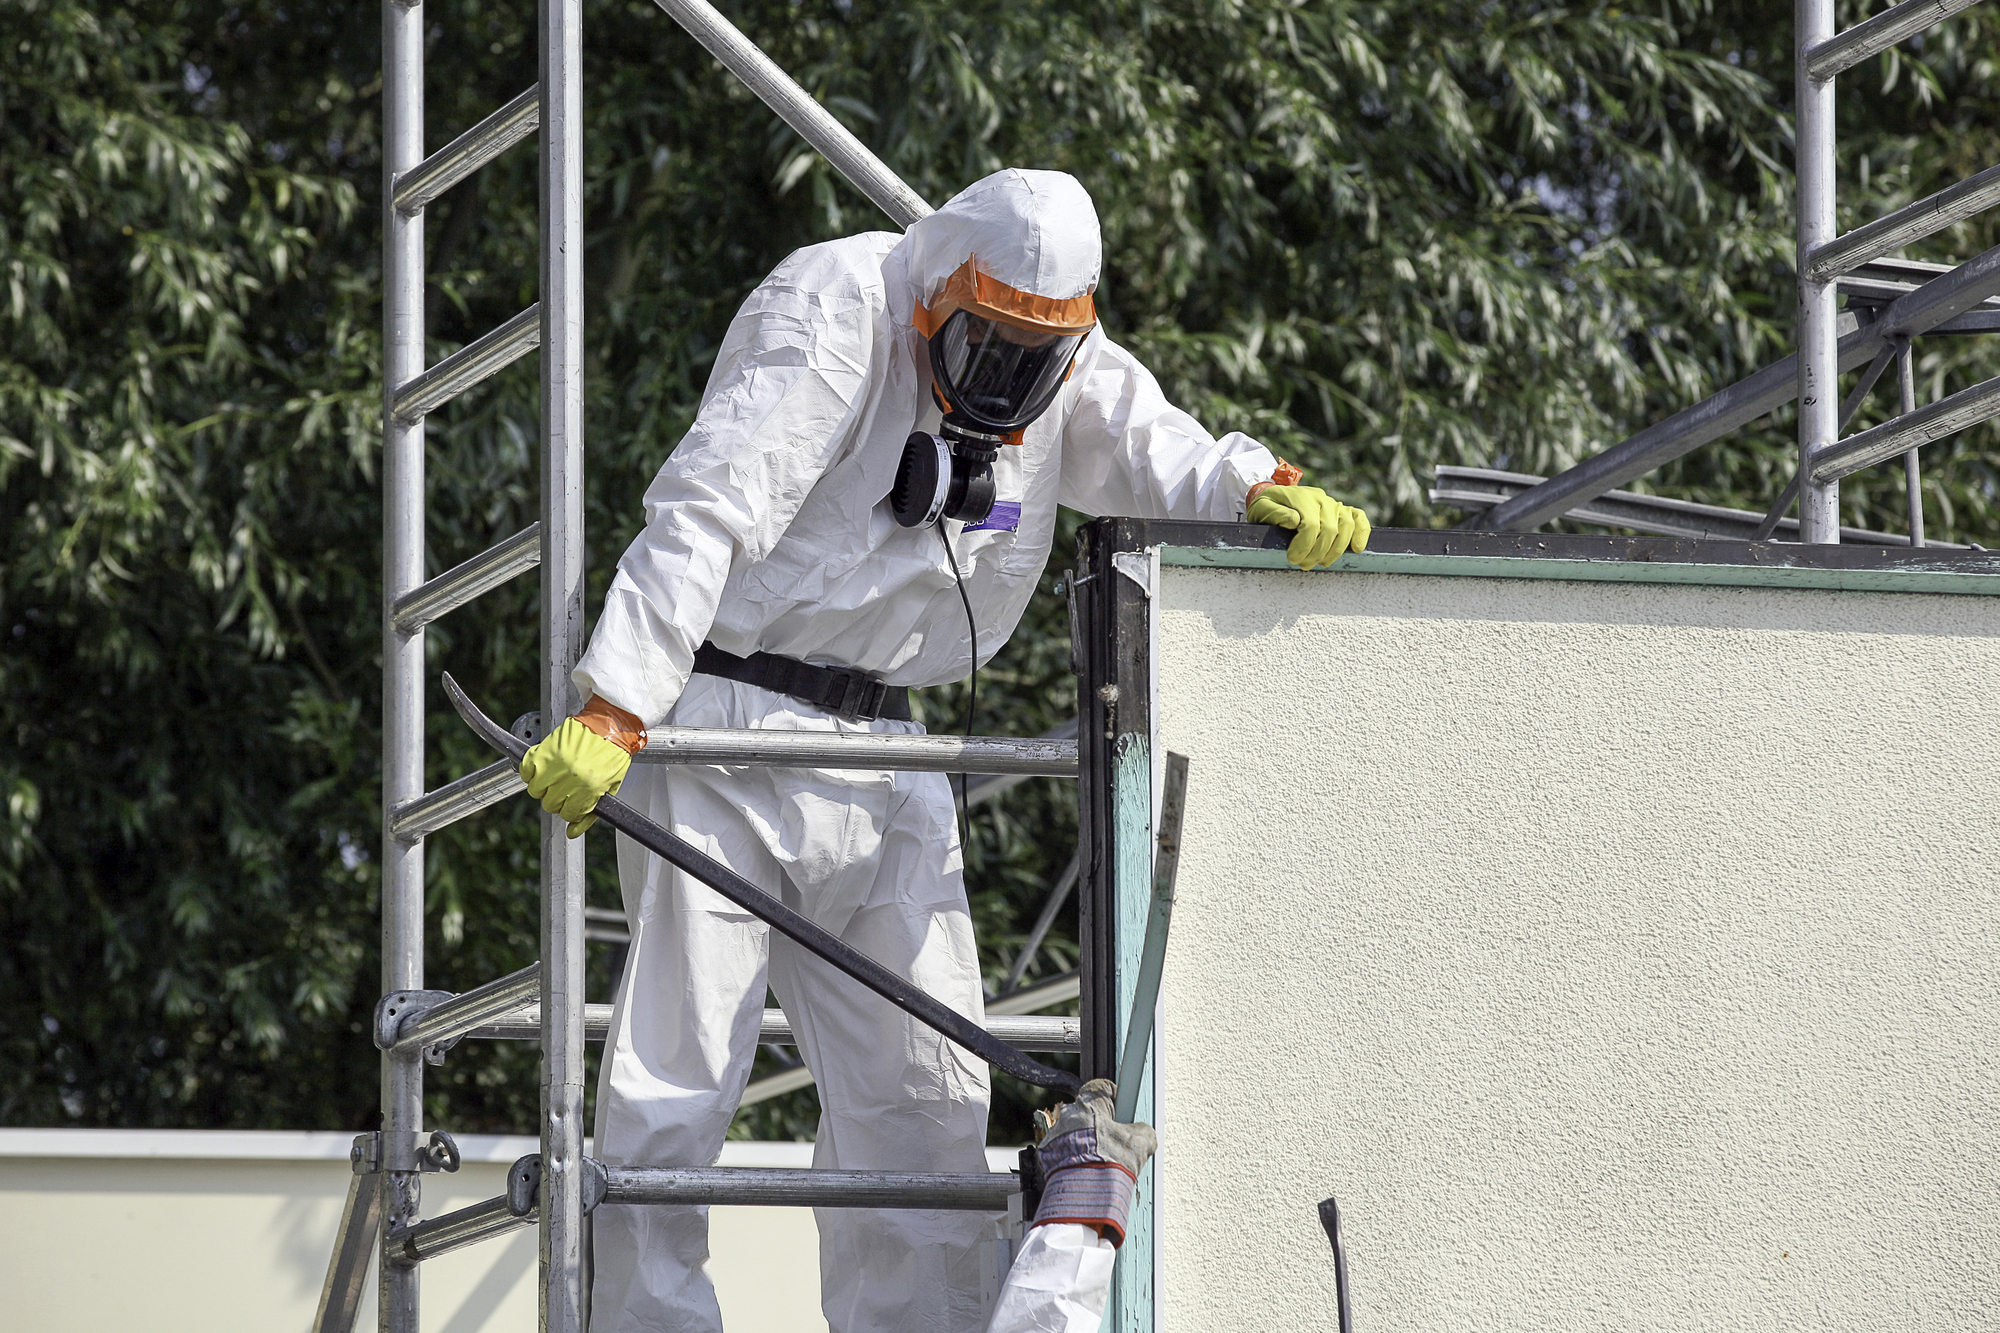 A worker on an asbestos removal site